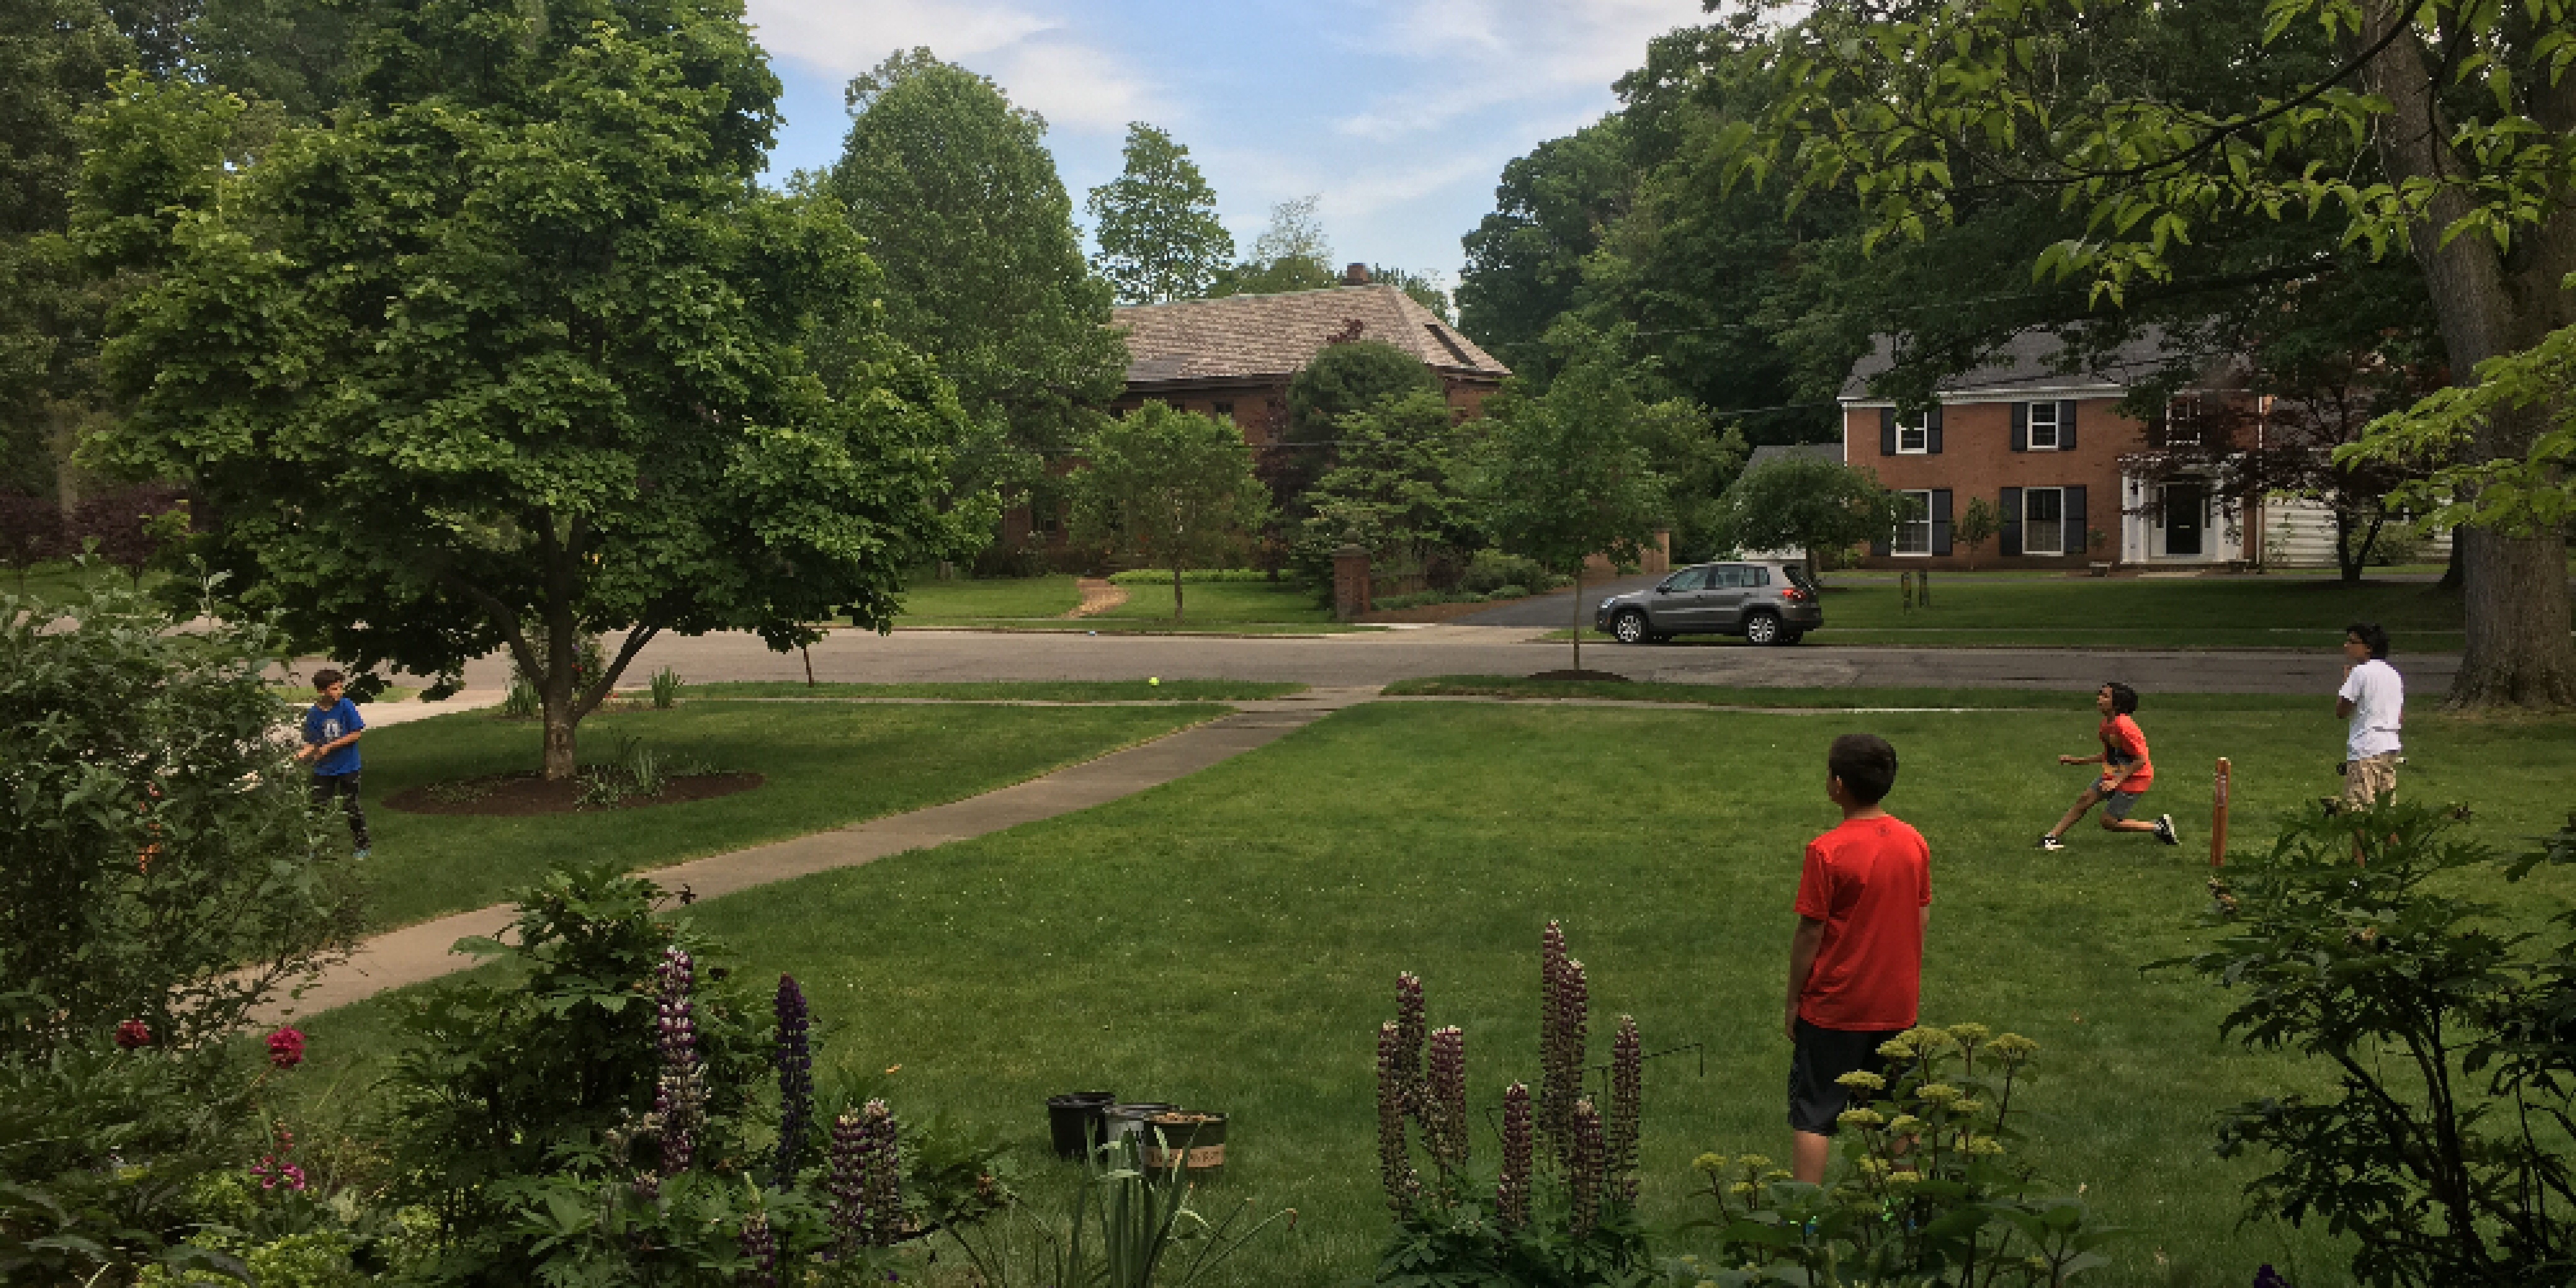 Image of kids playing cricket in front yard